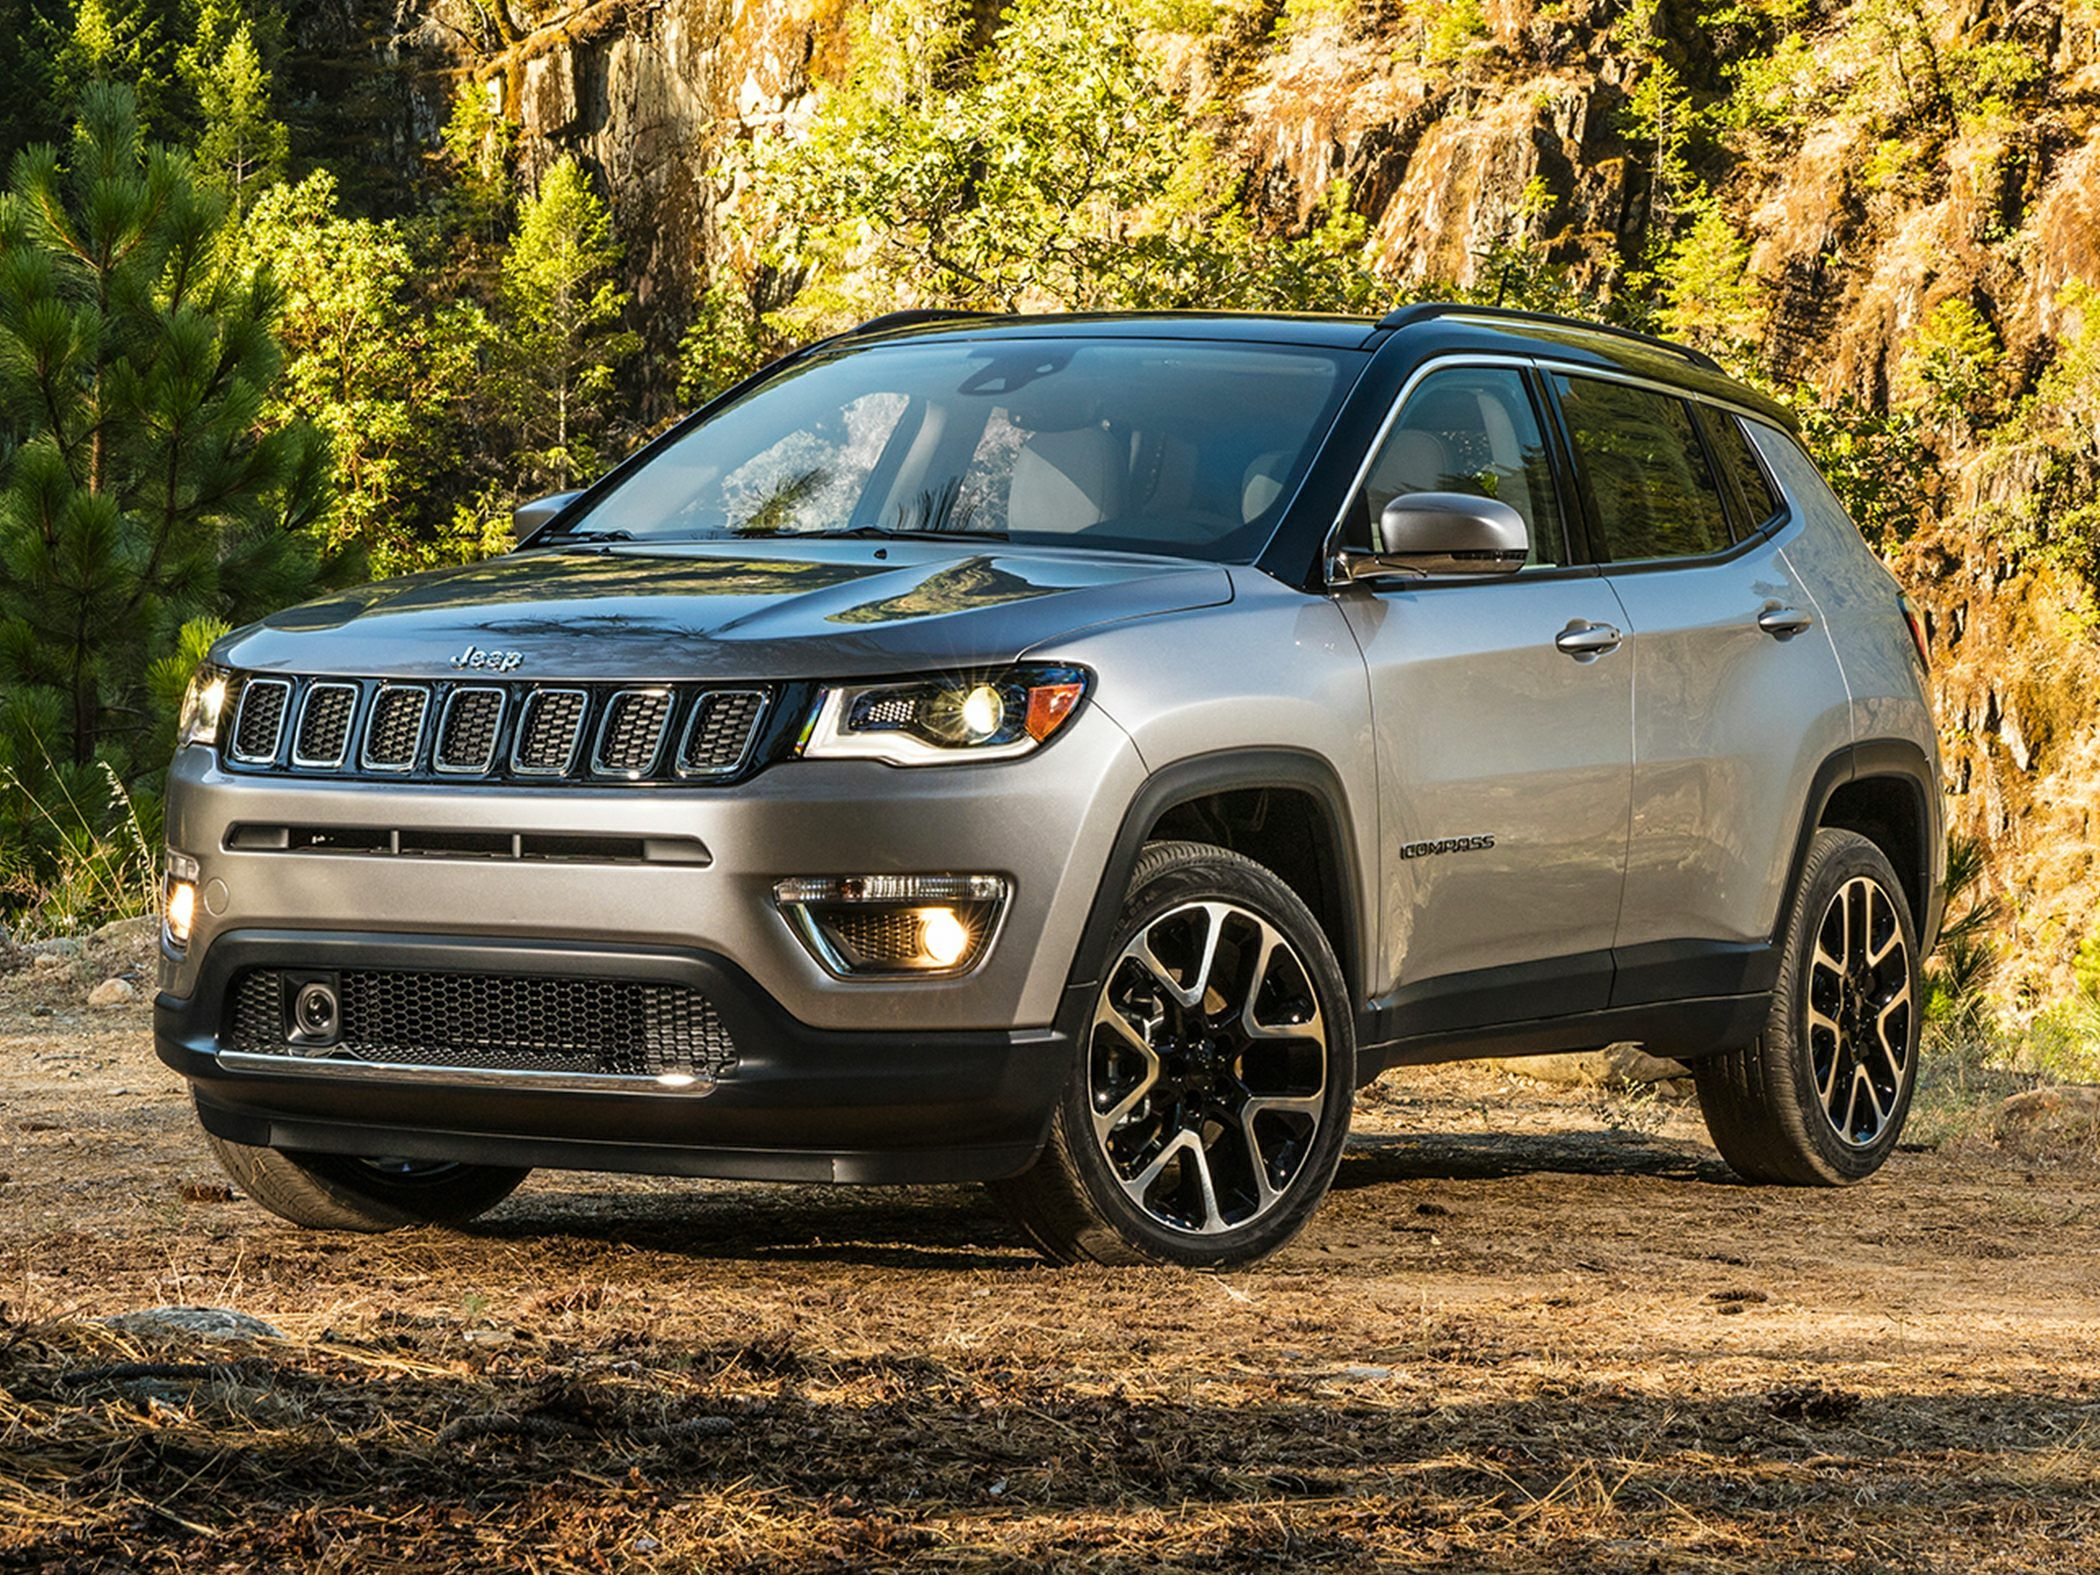 New 2018 Jeep Compass Price Photos Reviews Safety ジープ コンパス